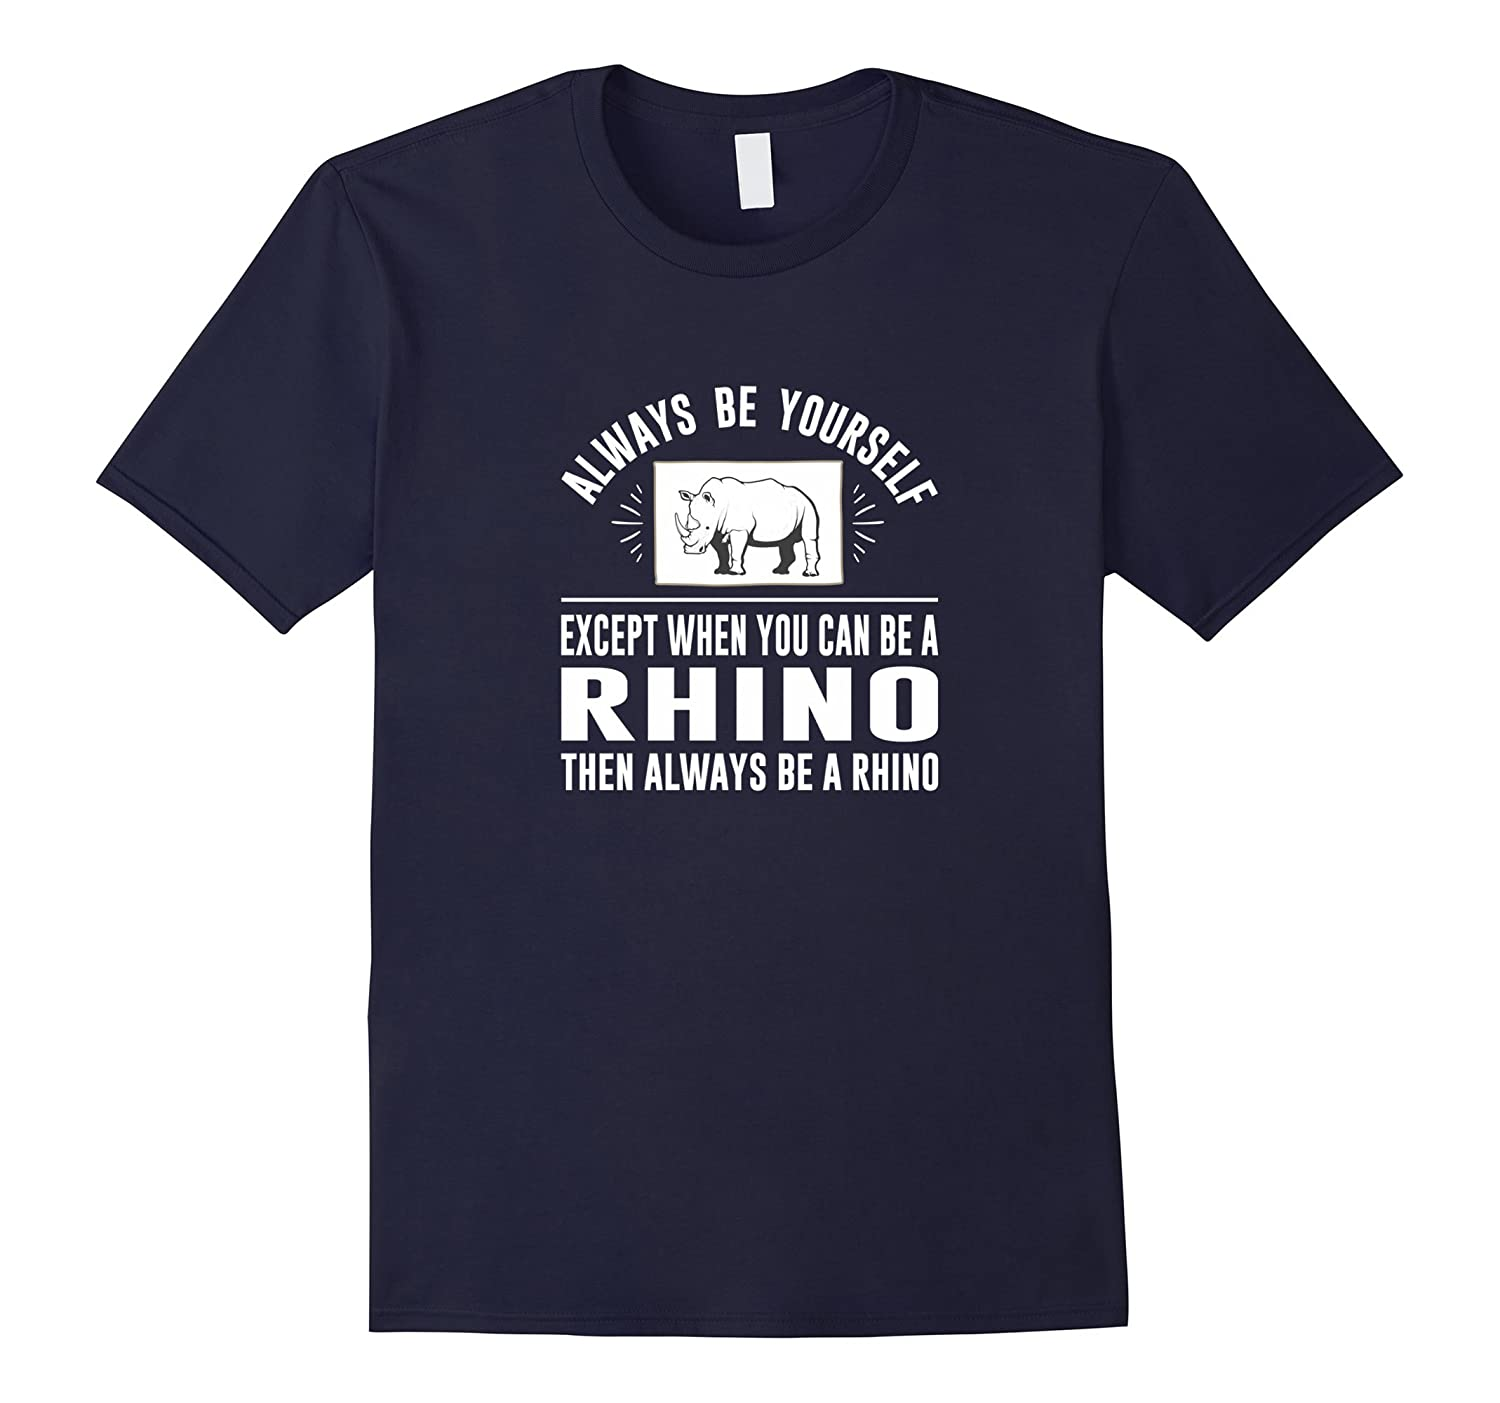 Always Be Yourself - Except When You Can Be a Rhino Shirt-TD